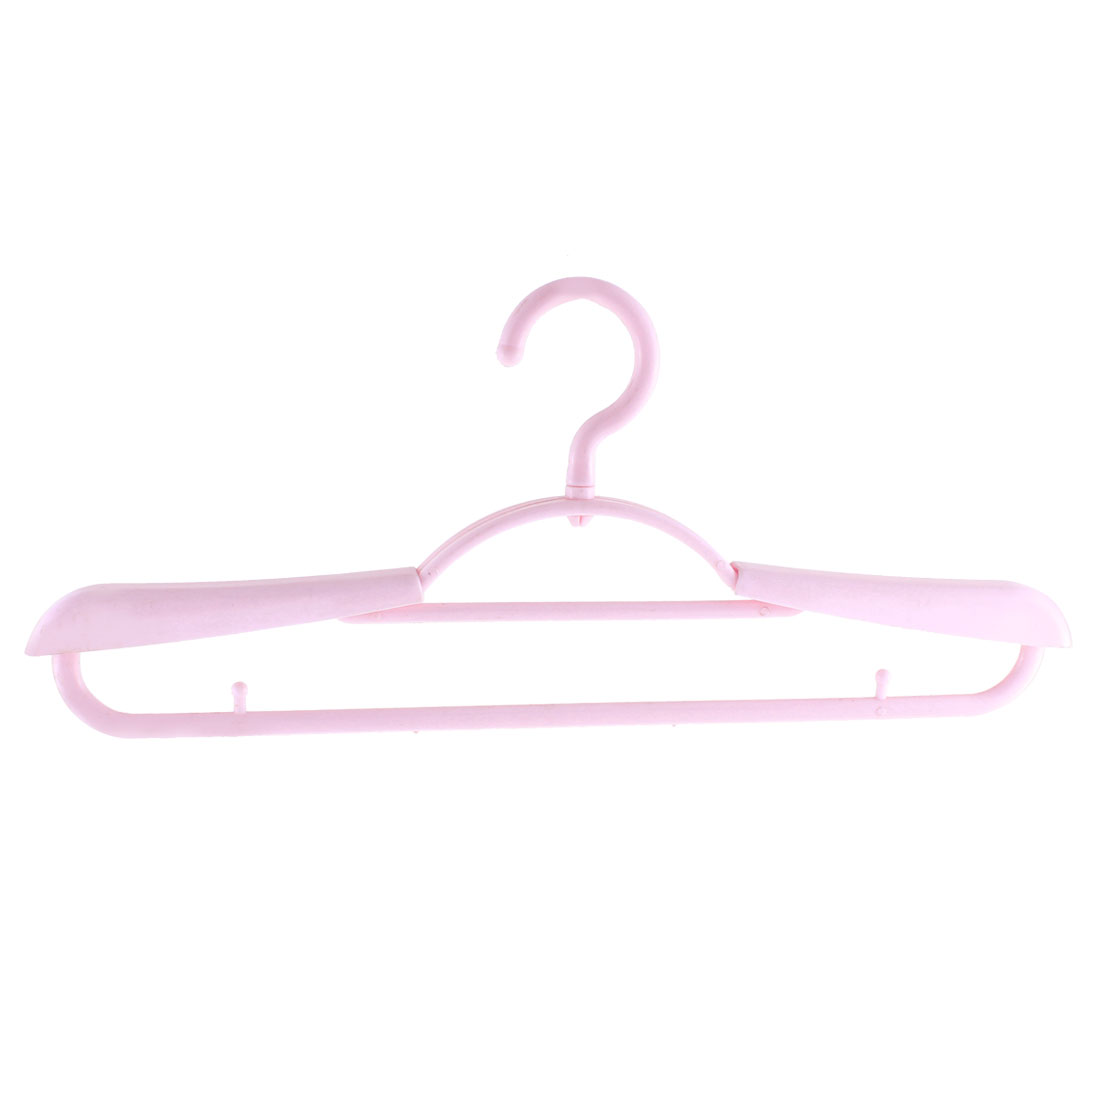 Plastic Space Saving Non-Slip Household Clothes Clothing Hanger Pink